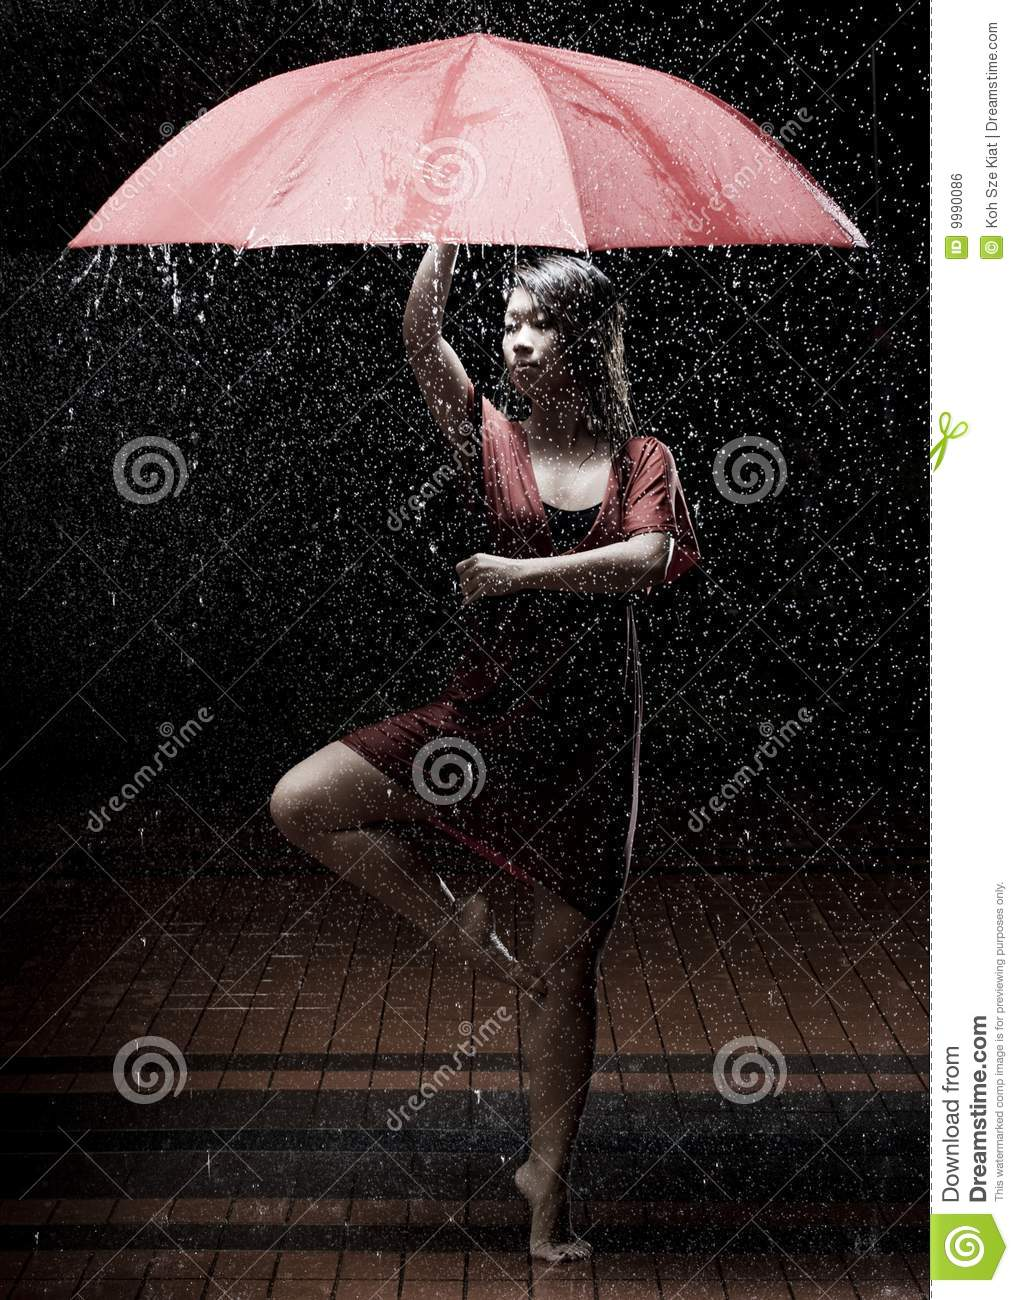 Ballet dancer in the rain